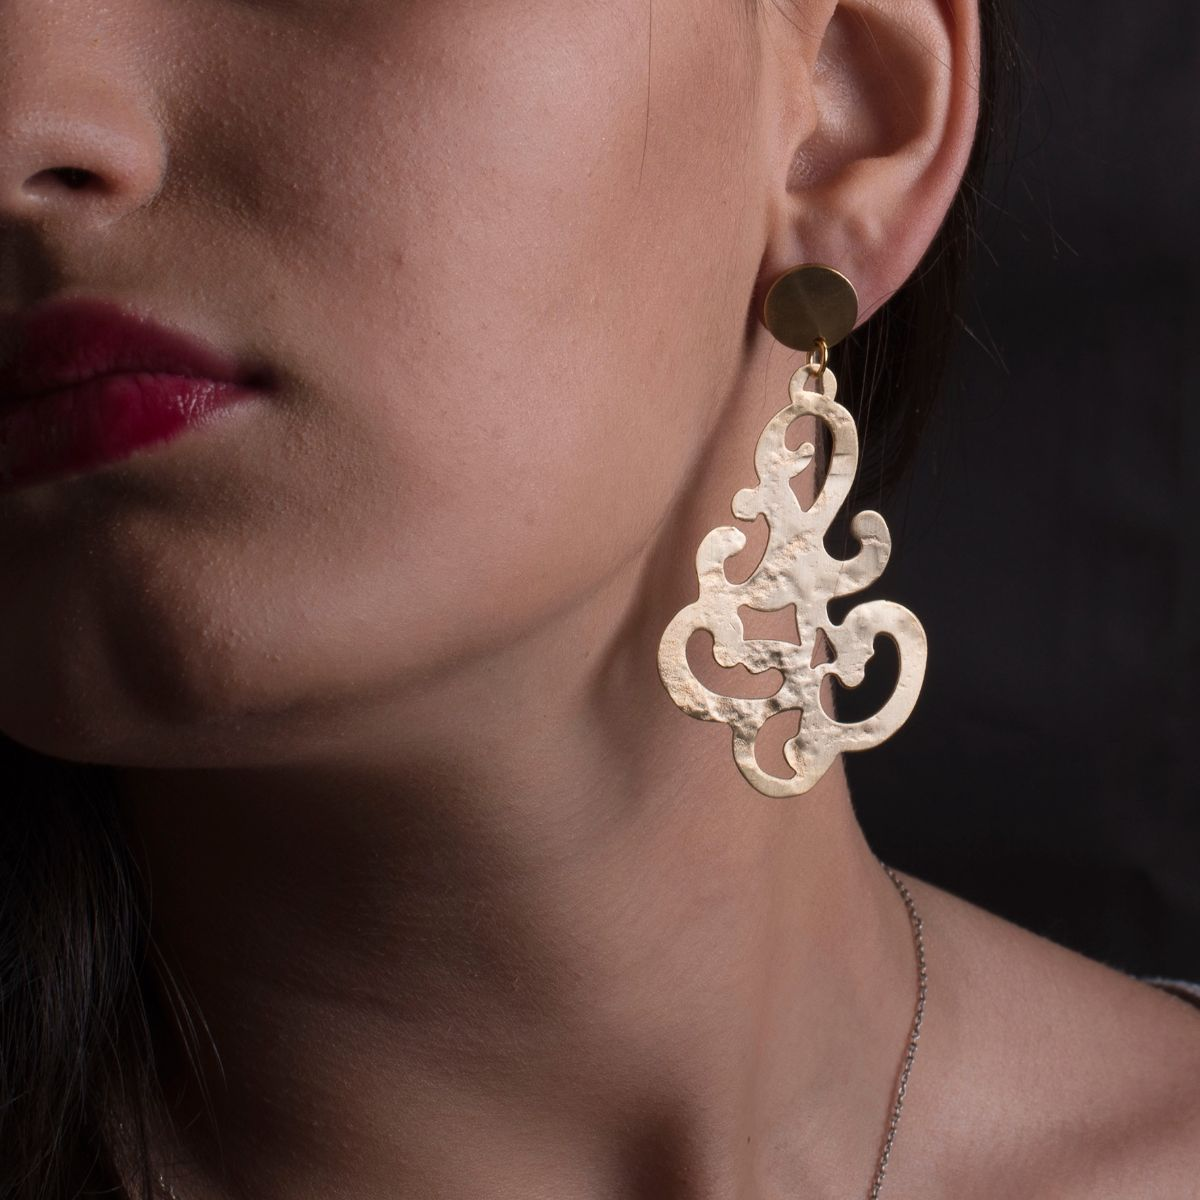 Baroque long metallic earring with gold finish in an original filigree shape with hypoallergenic snap closure